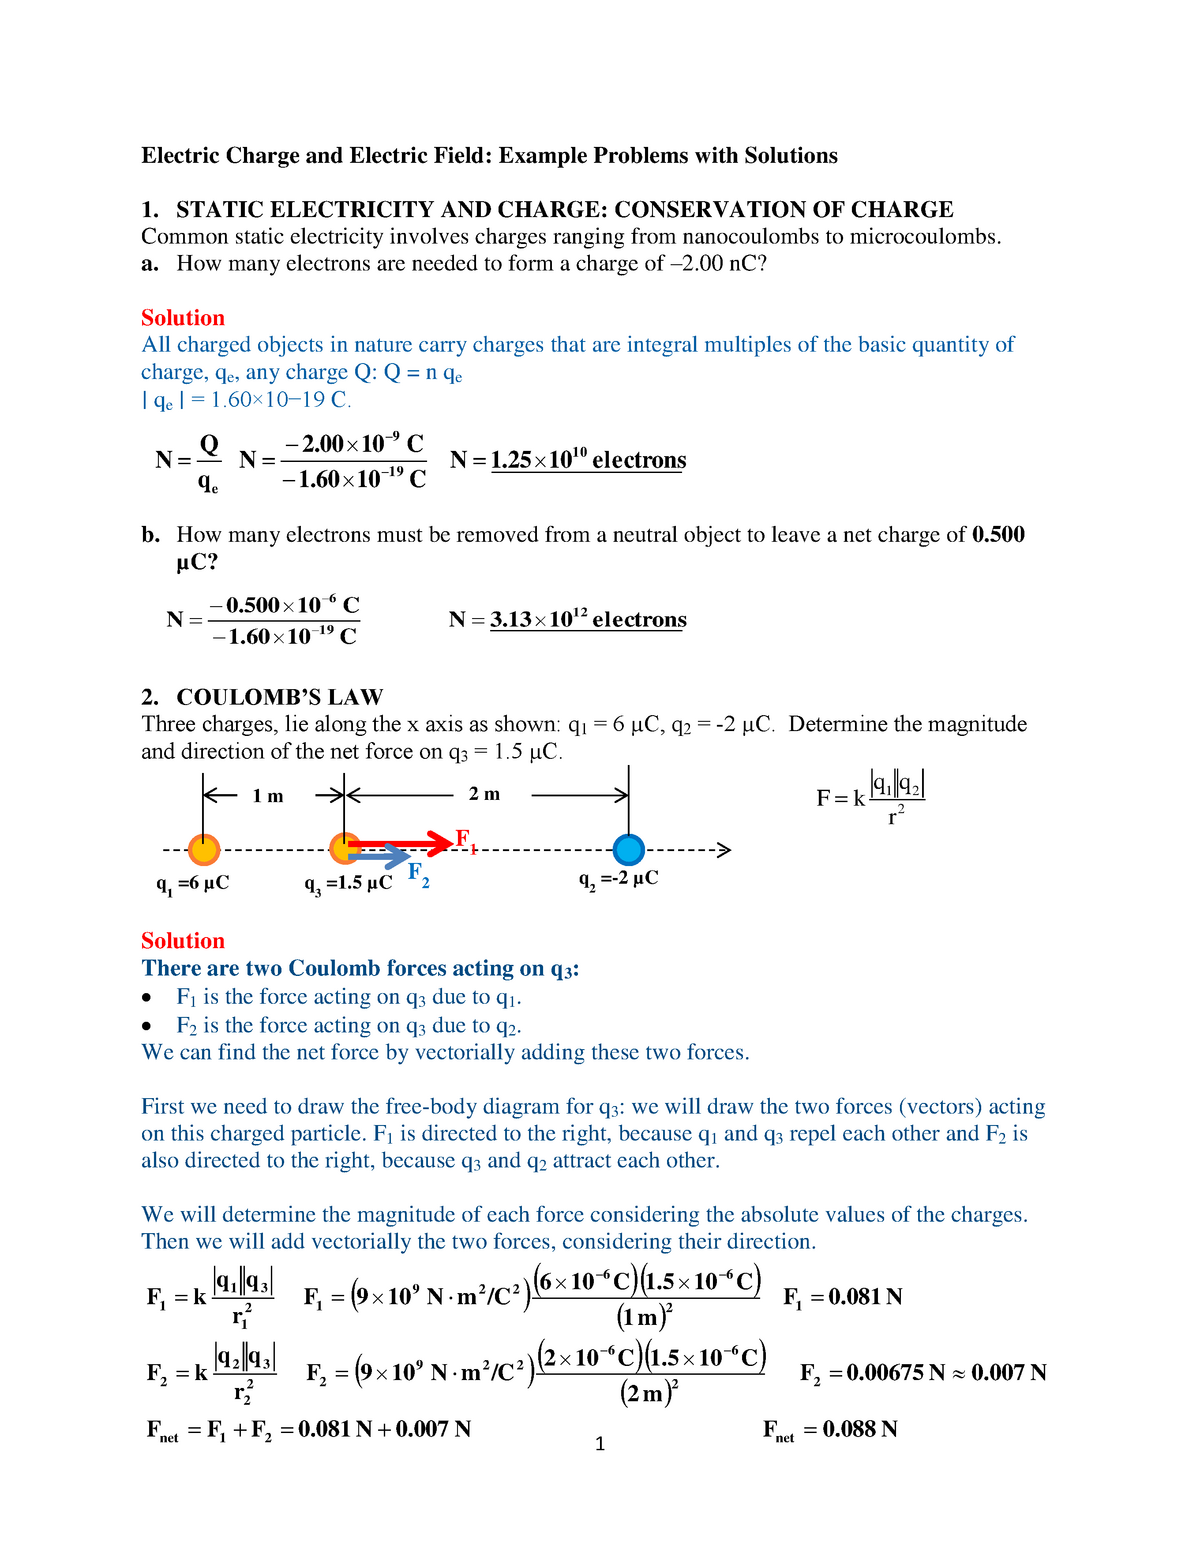 Electric Charge and Electric Field Example Problems with